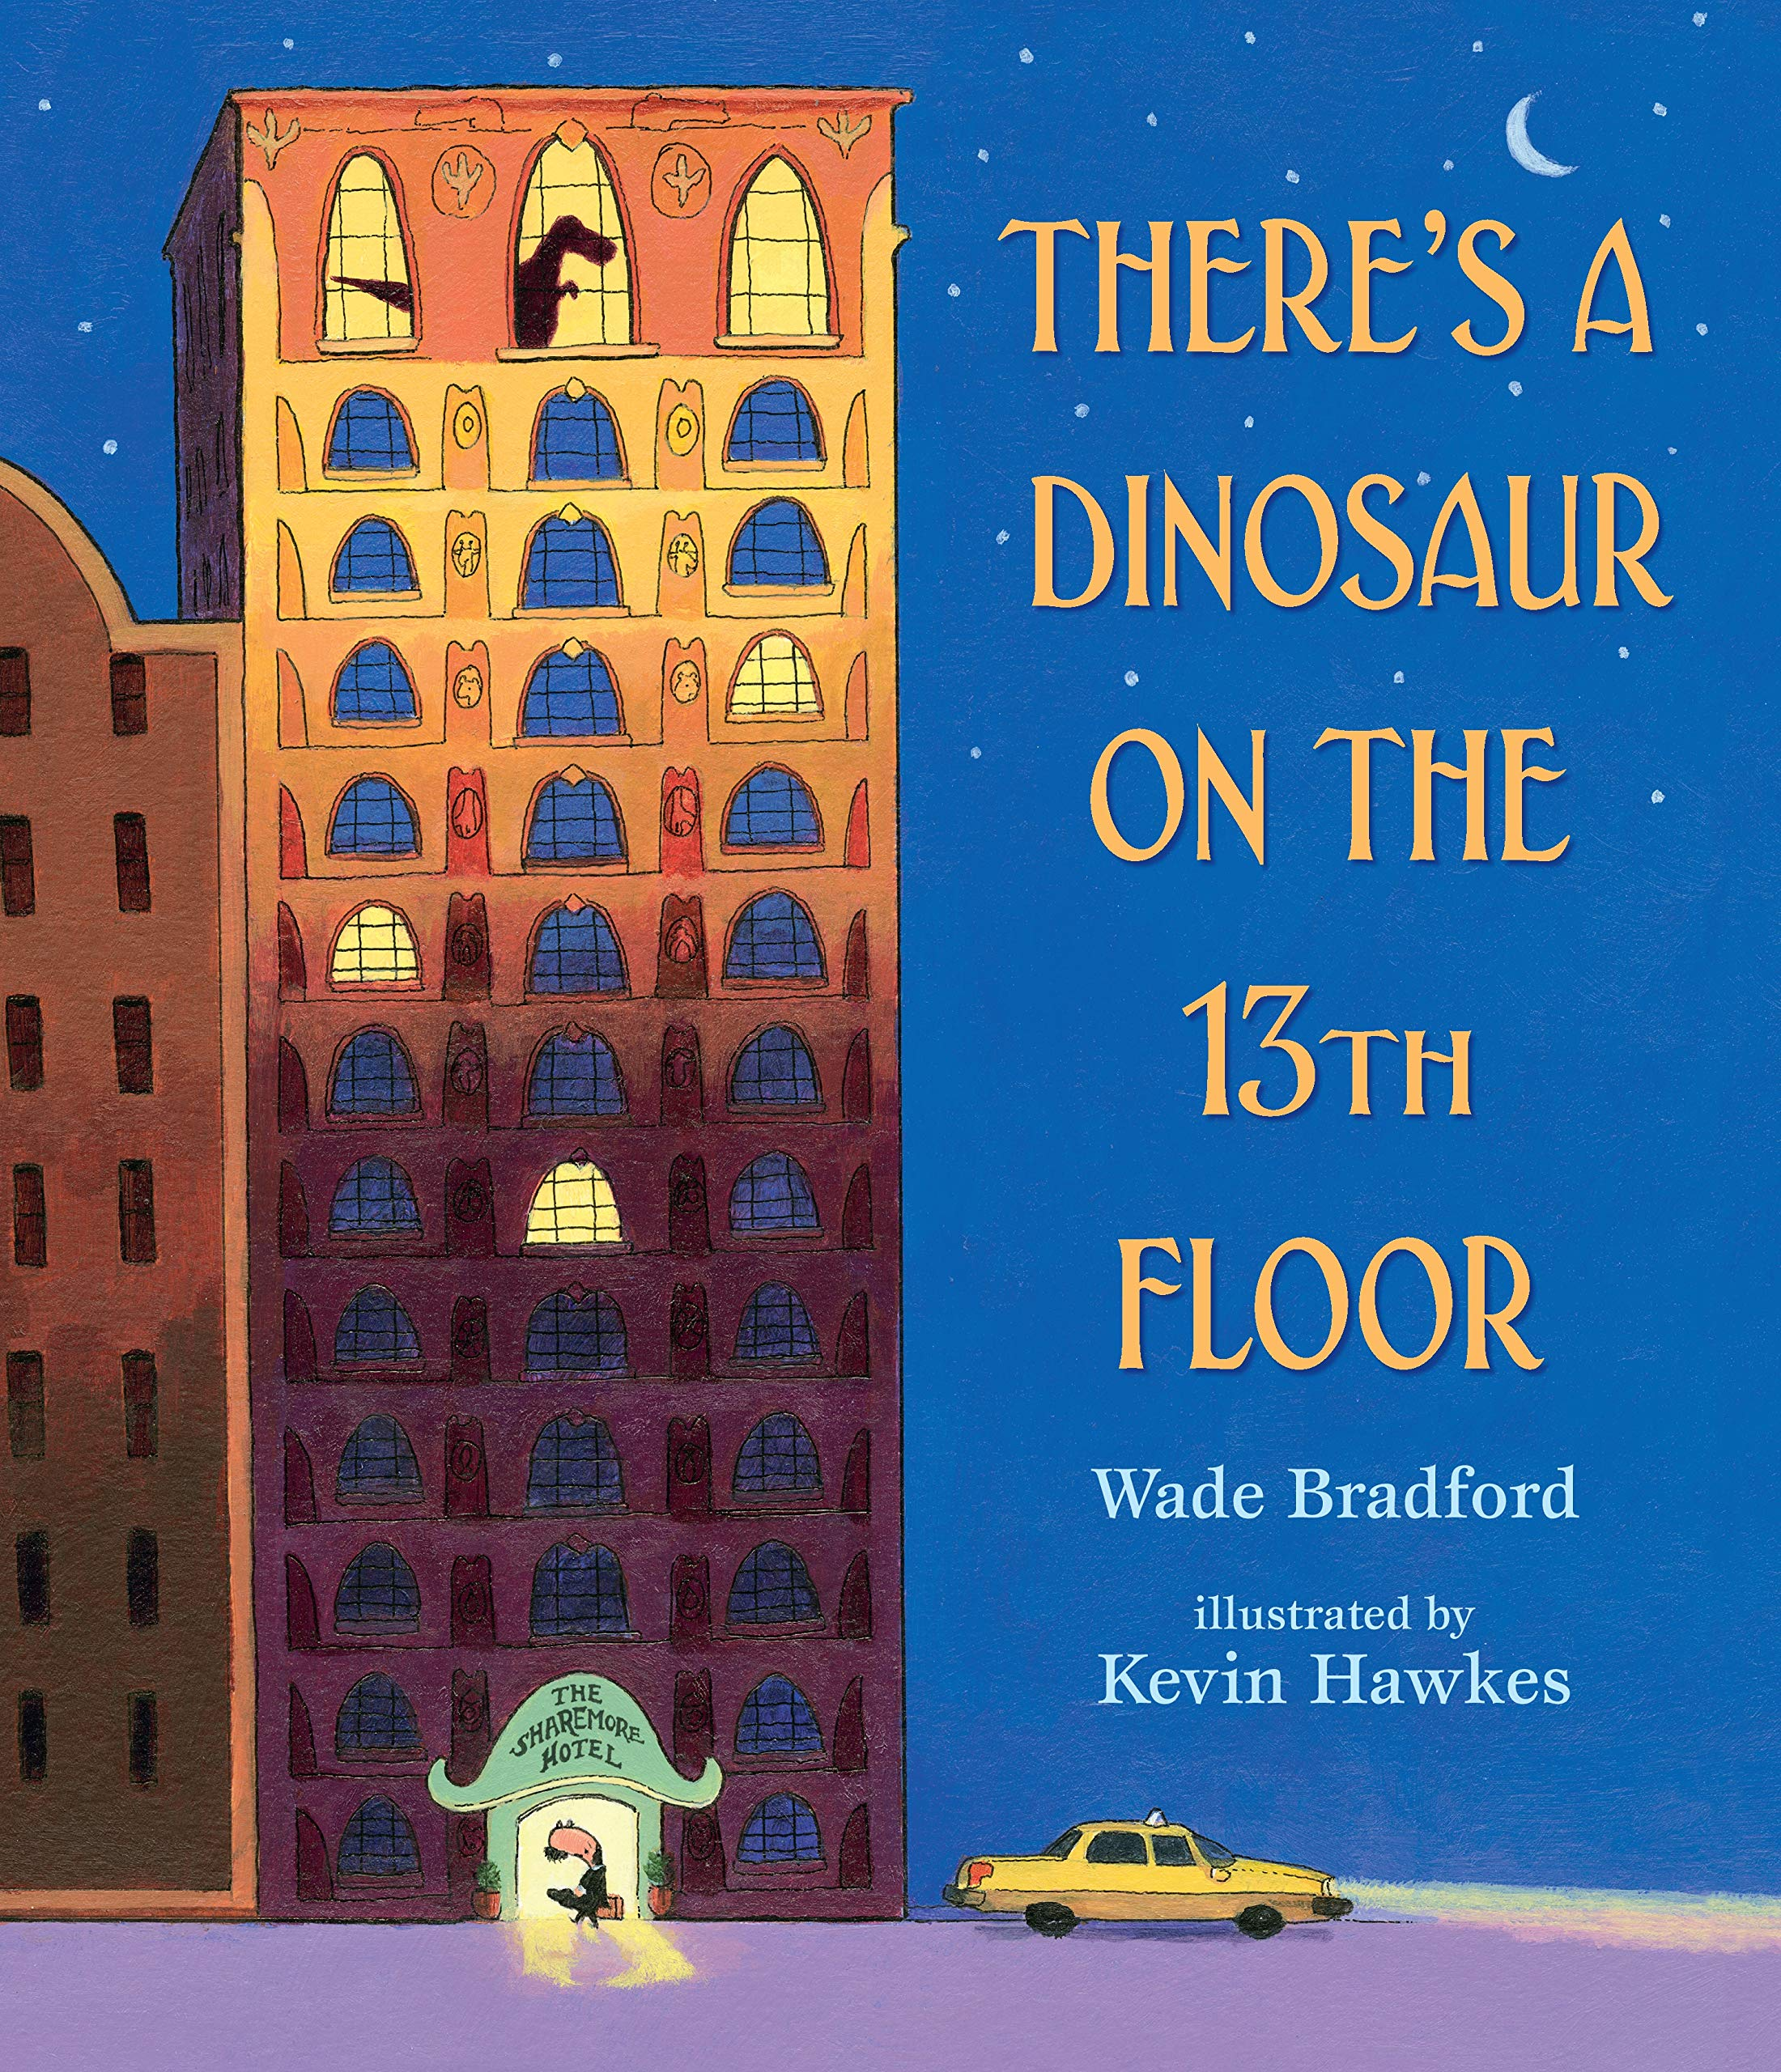 4183ea92e5577 There's a Dinosaur on the 13th Floor: Wade Bradford, Kevin Hawkes ...